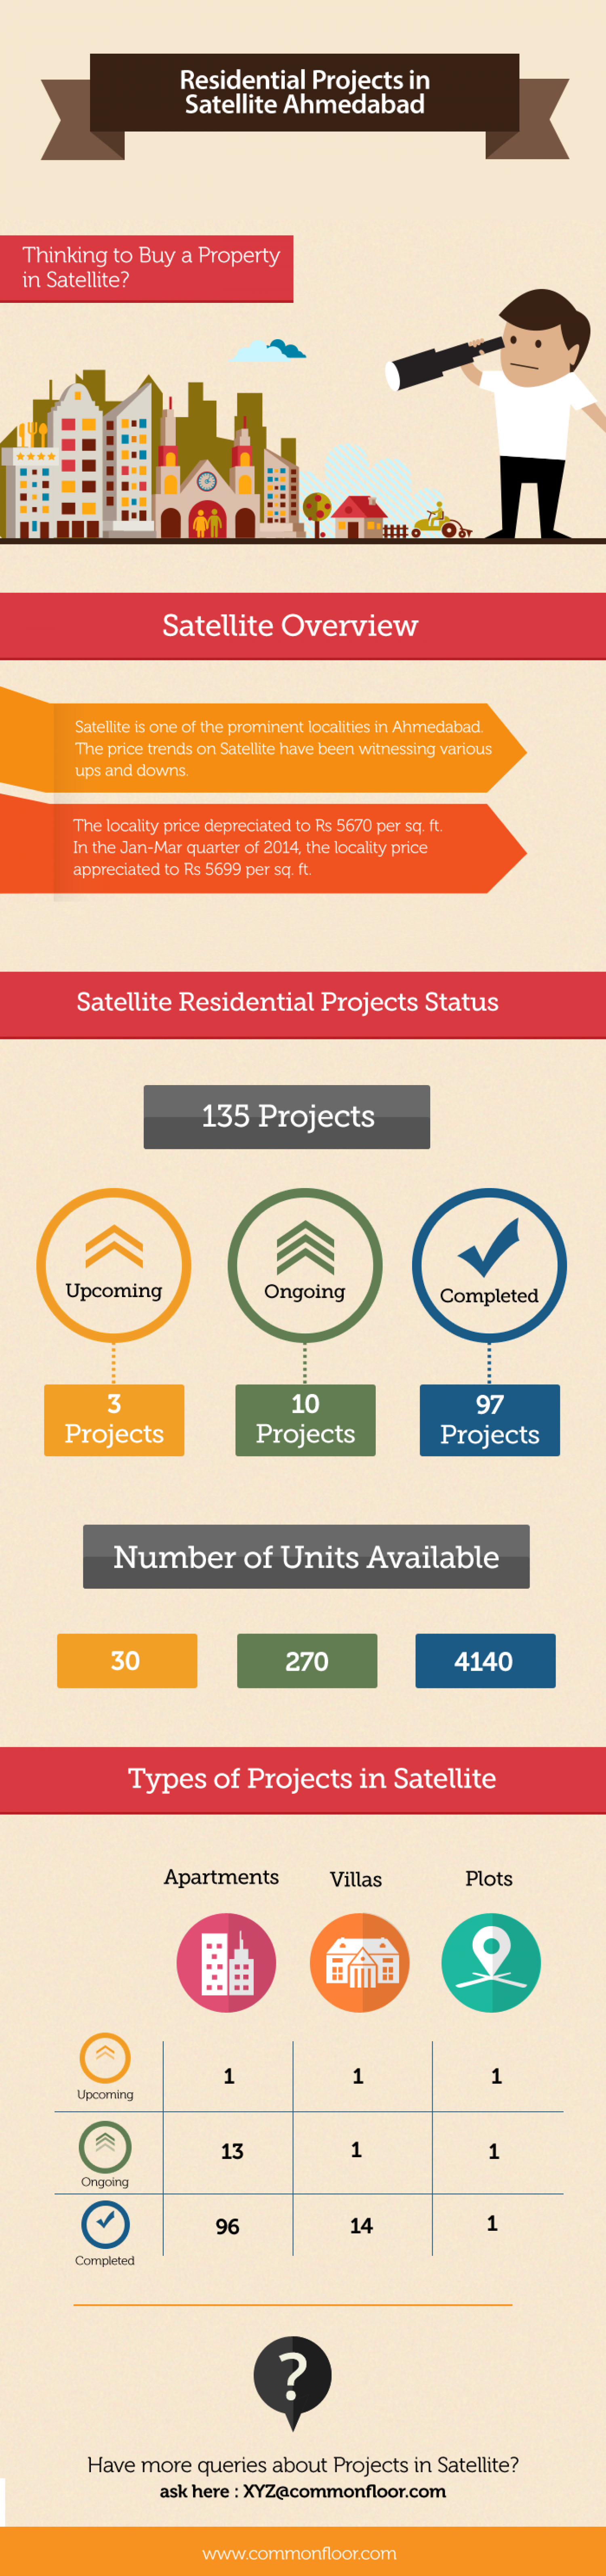 Residential Projects in Satellite, Ahmedabad Infographic